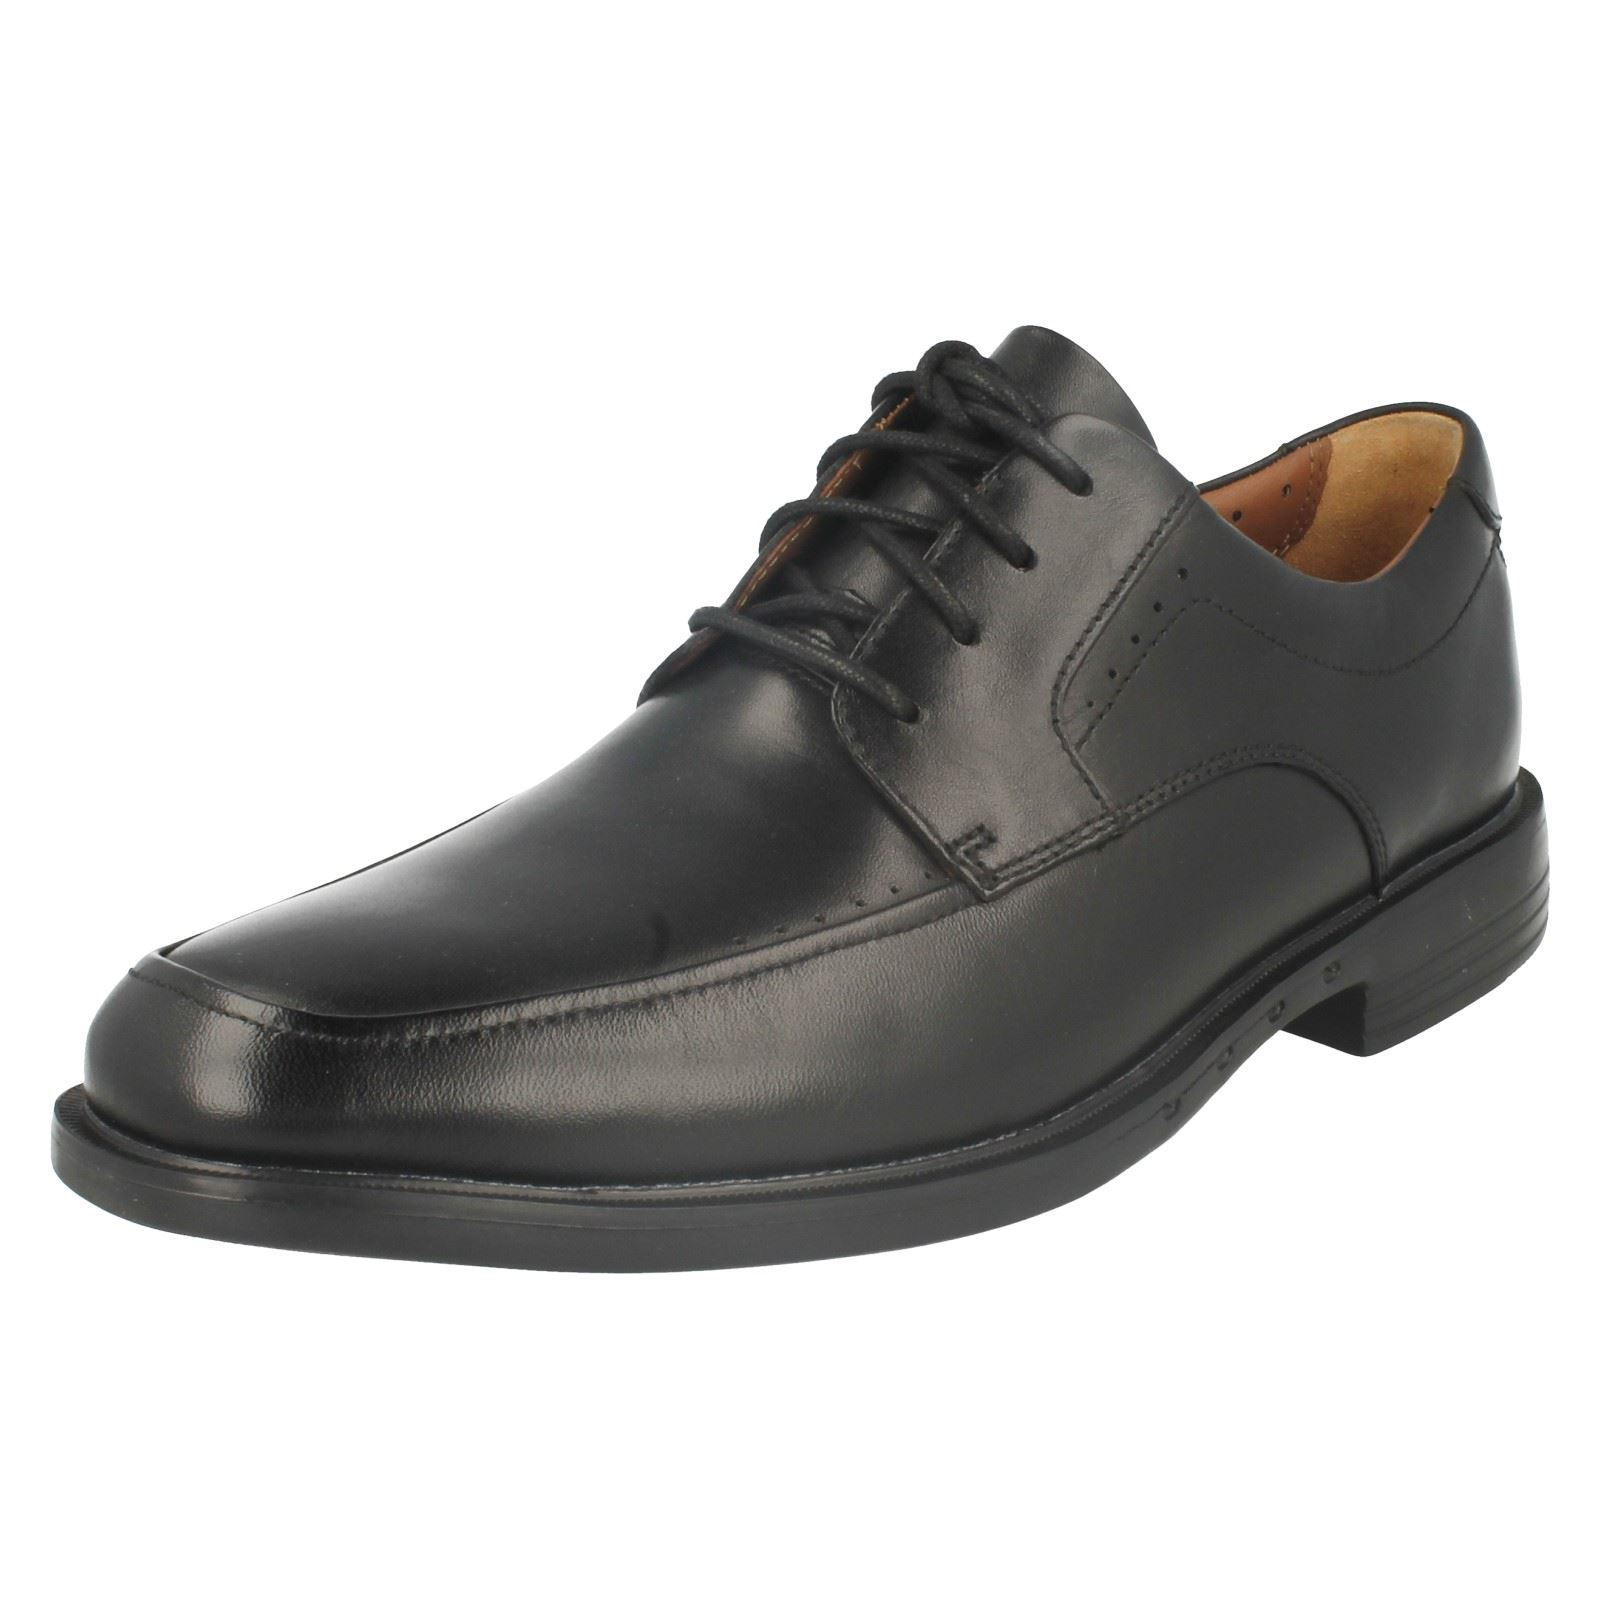 Mens Clarks Unstructured Formal Lace Up Shoes 'Unbizley View'